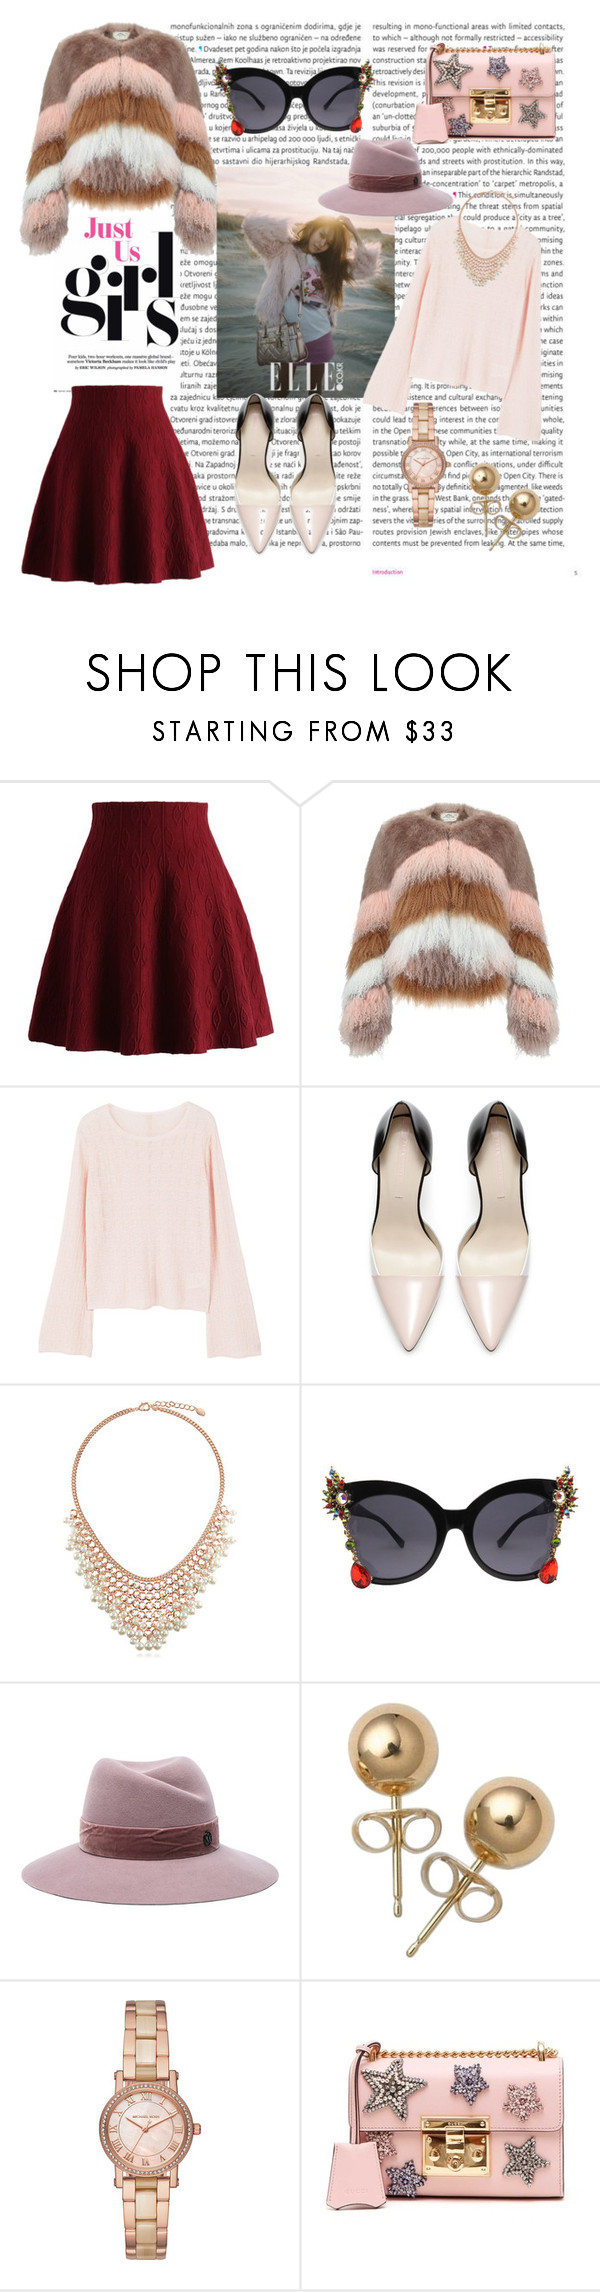 """fake fur"" by cristhyne-torres on Polyvore featuring moda, Oris, Chicwish, Urbancode, MANGO, Zara, BERRICLE, Maison Michel, Bling Jewelry e Michael Kors"